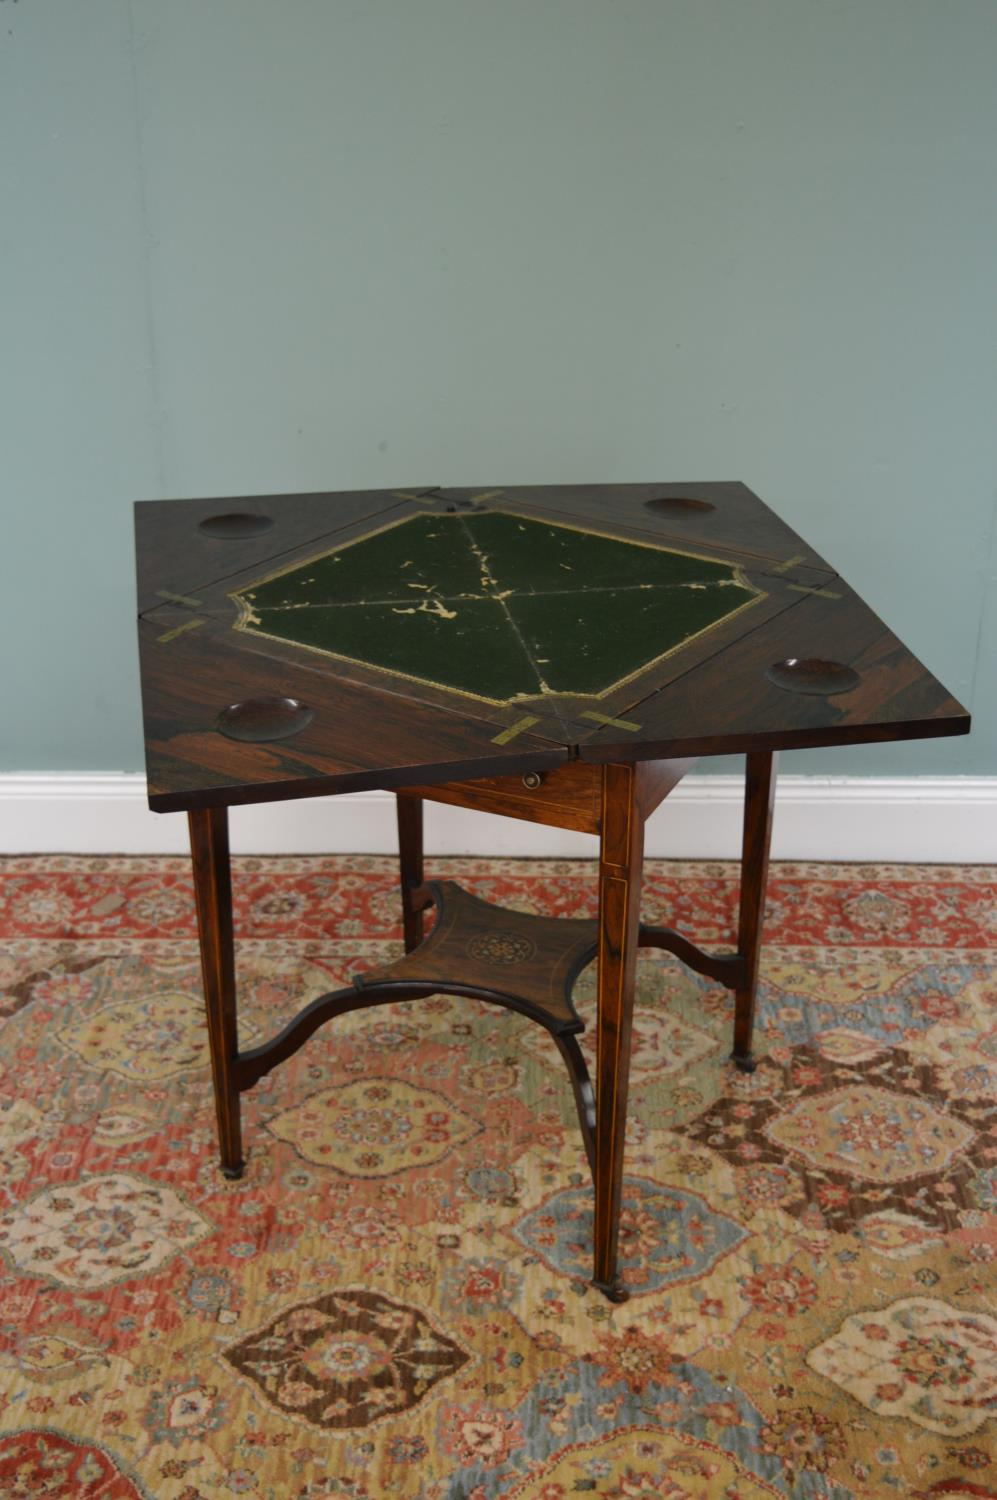 Edwardian rosewood and ivory inlaid envelope games table - Image 2 of 2